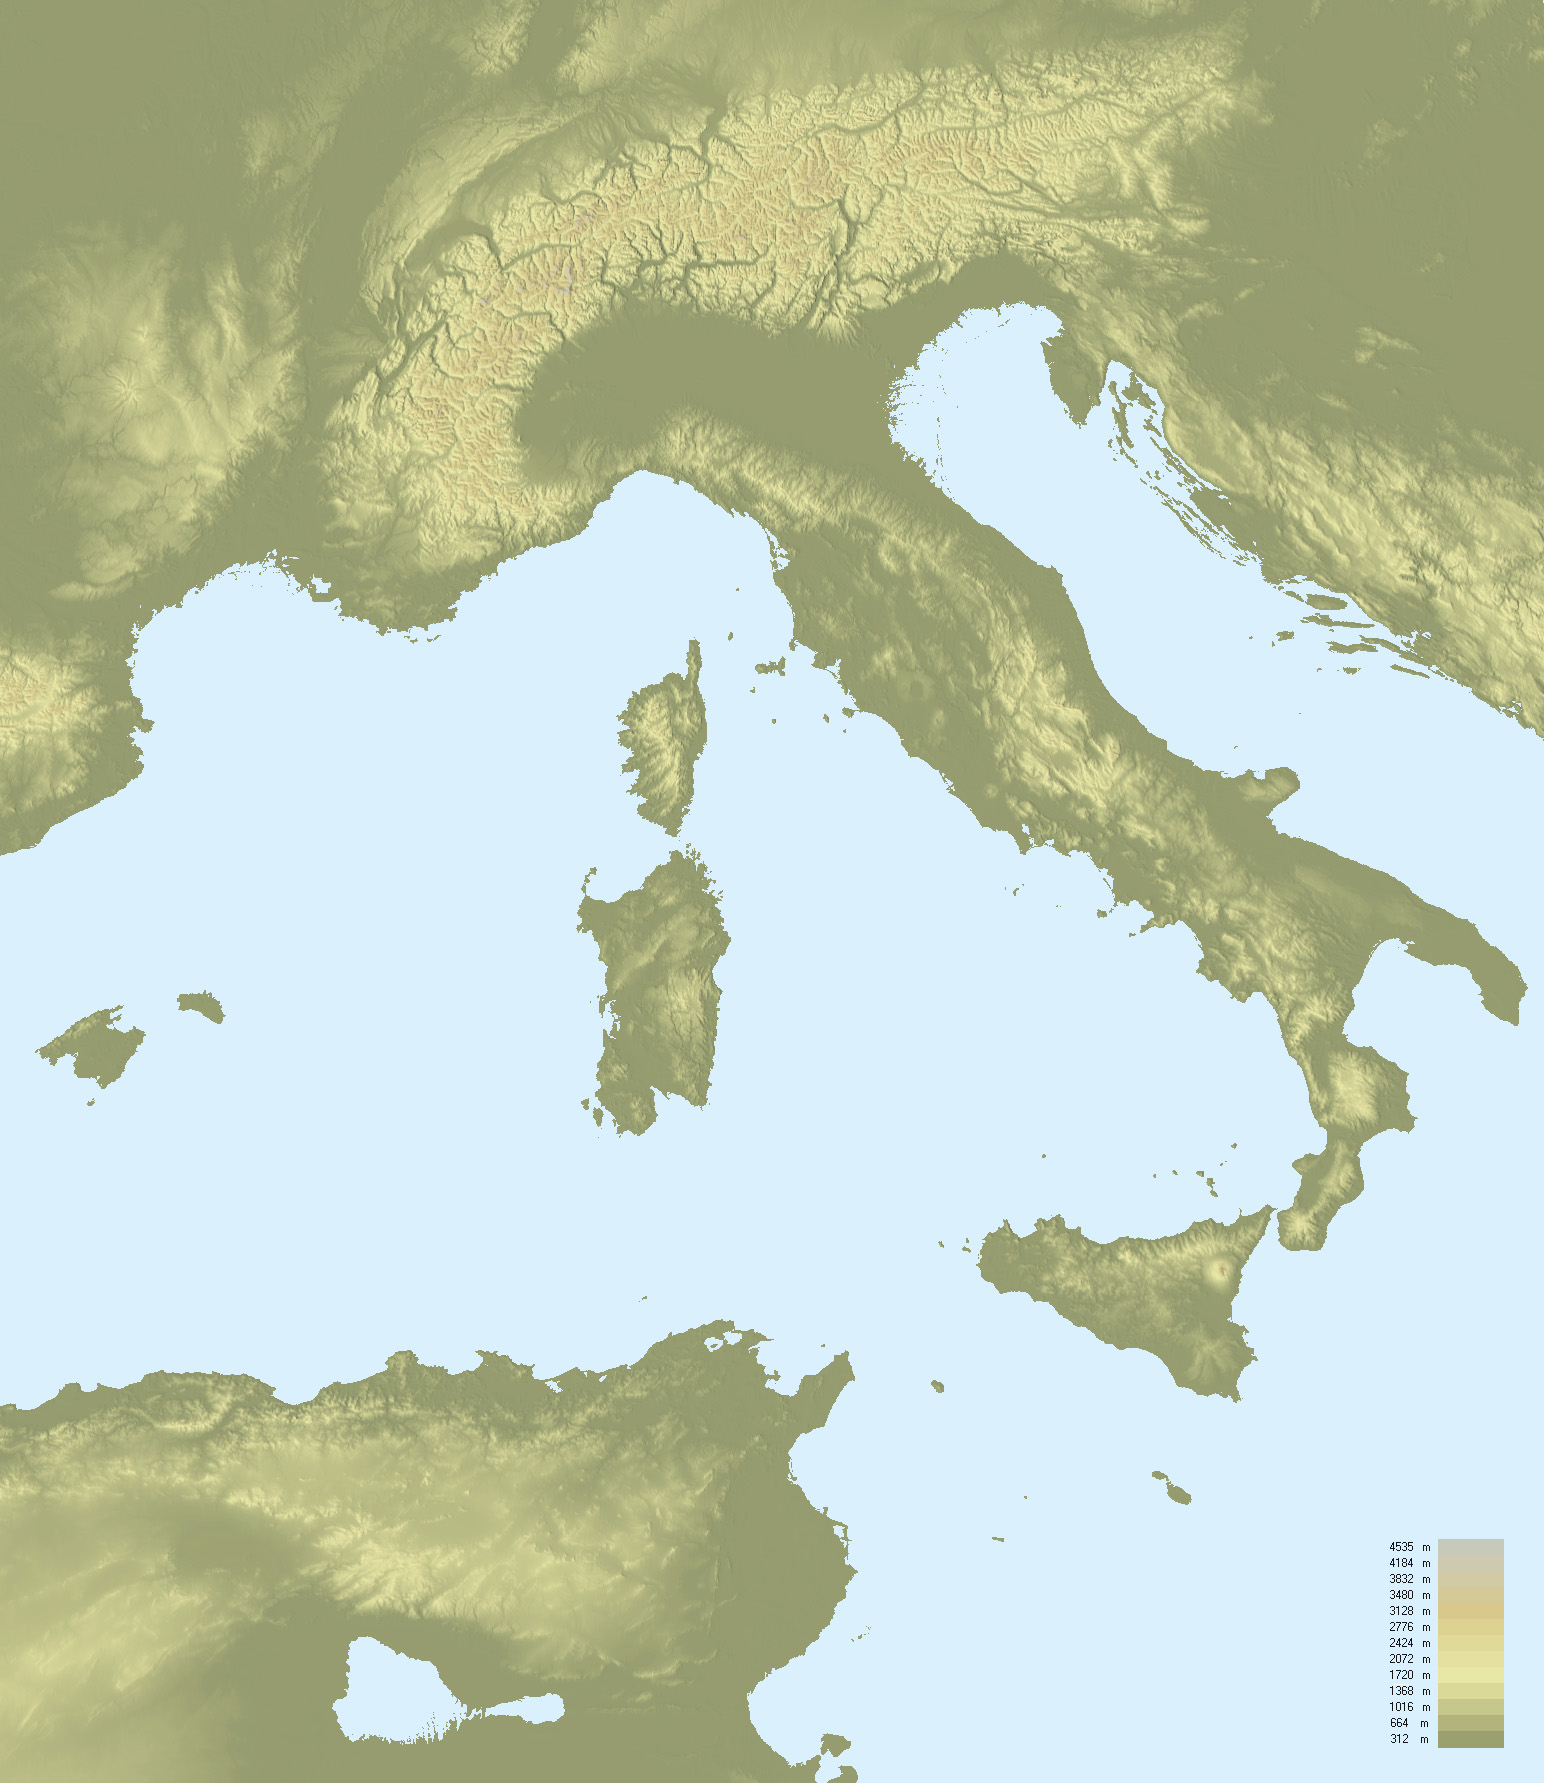 FileTopographic Map Of Italyjpg Wikimedia Commons - Topographical map of us of 1783